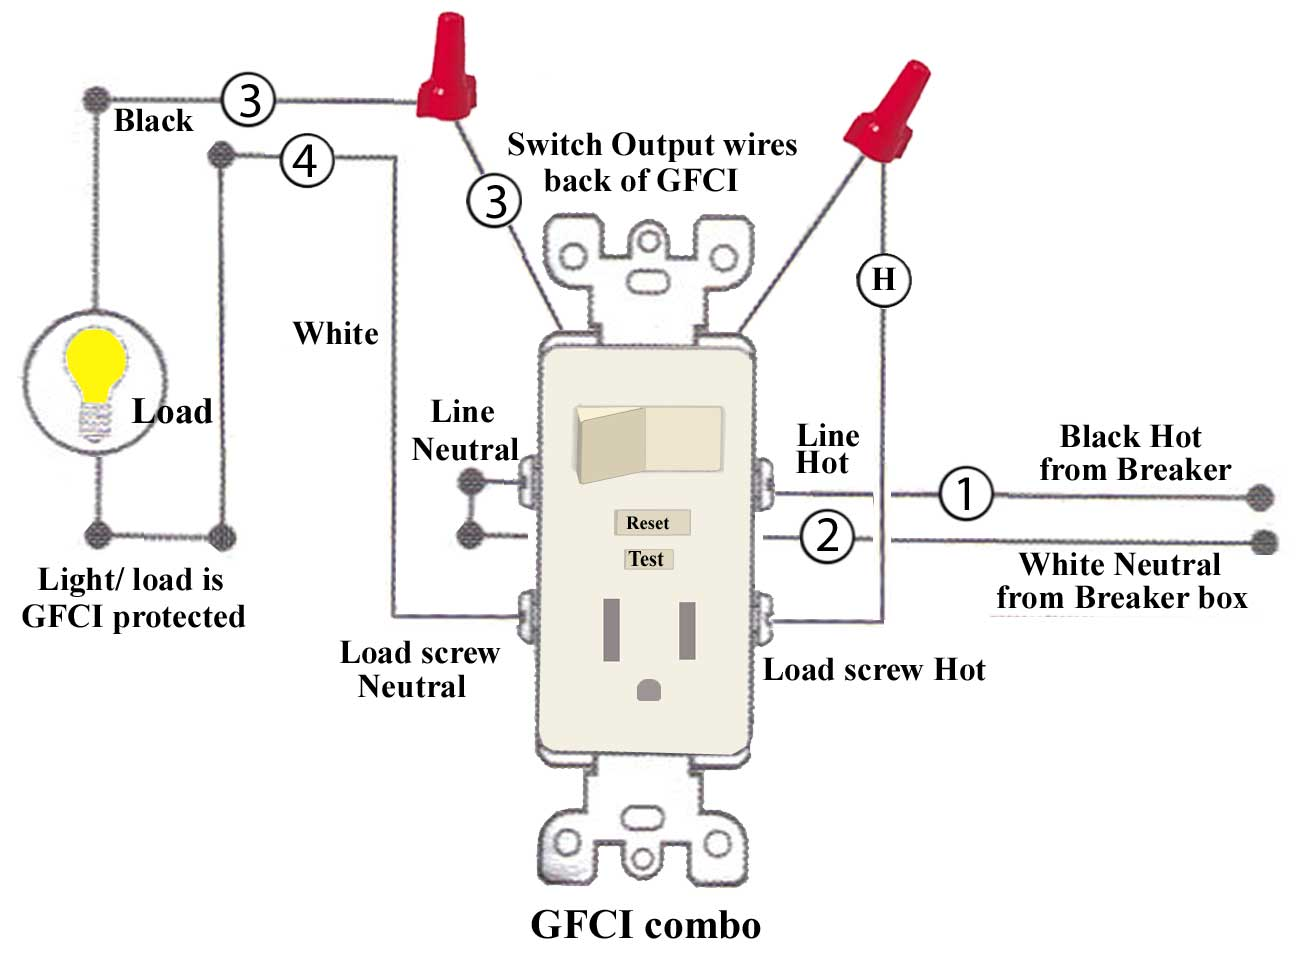 hight resolution of how to install and troubleshoot gfci gfci wiring multiple outlets diagram gfci combination wiring larger image